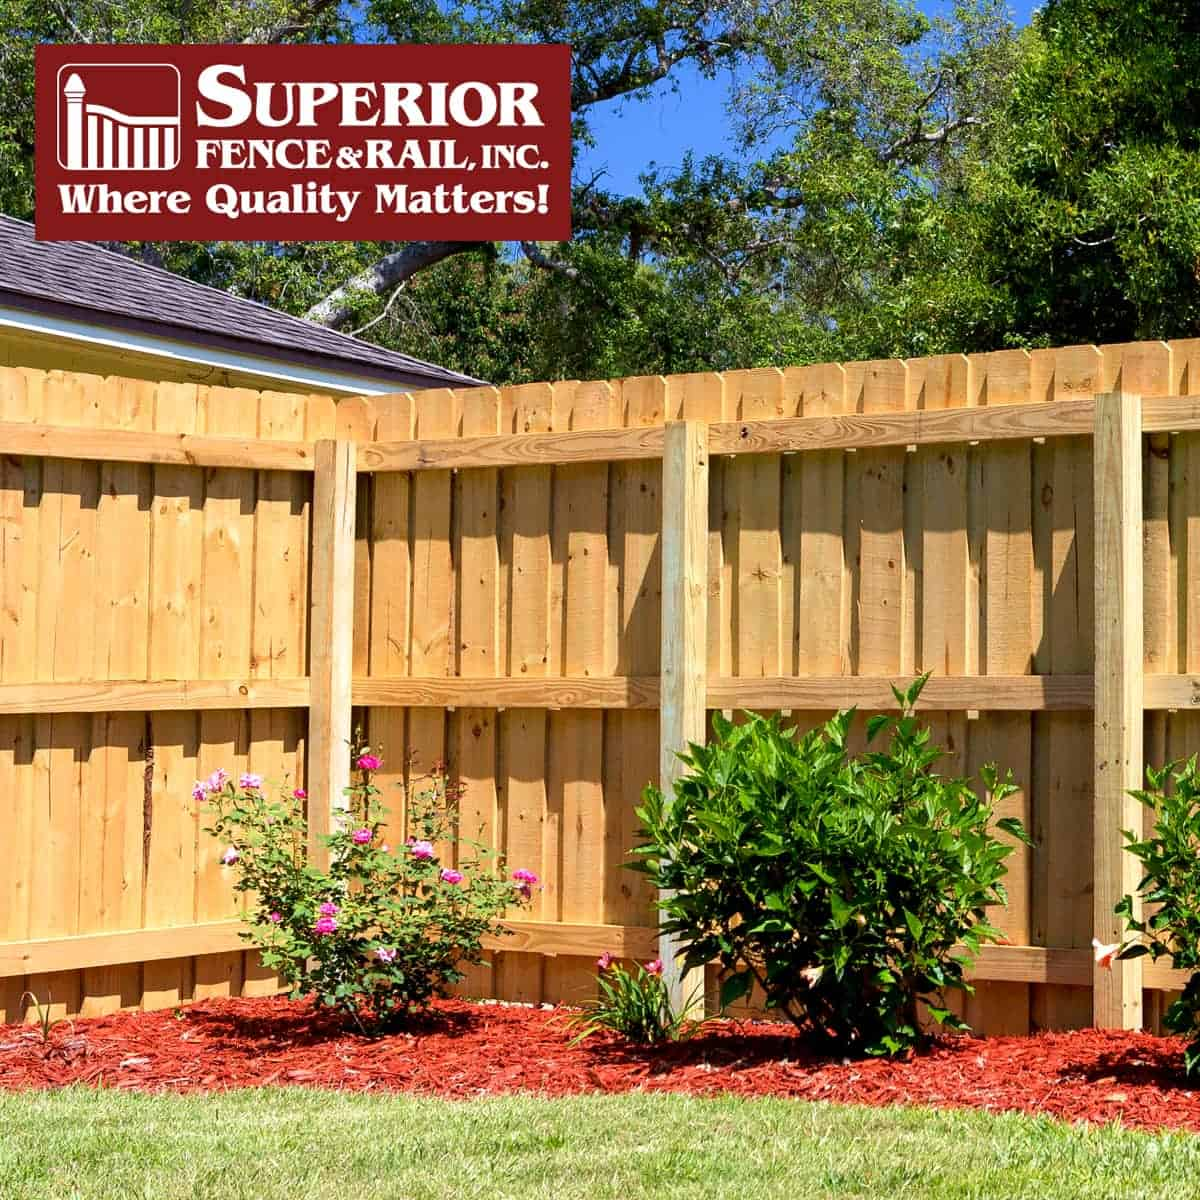 West Omaha fence company contractor